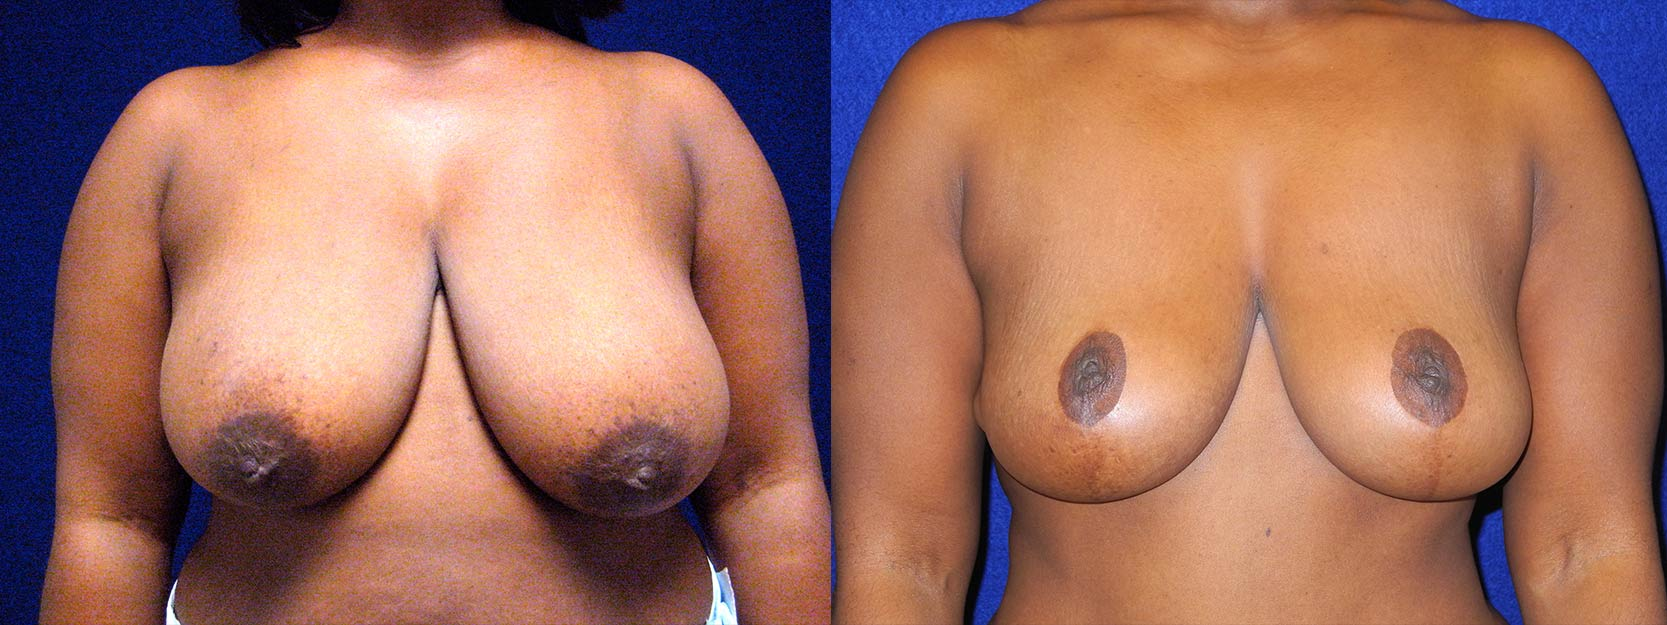 Frontal View - Breast Reduction Lift